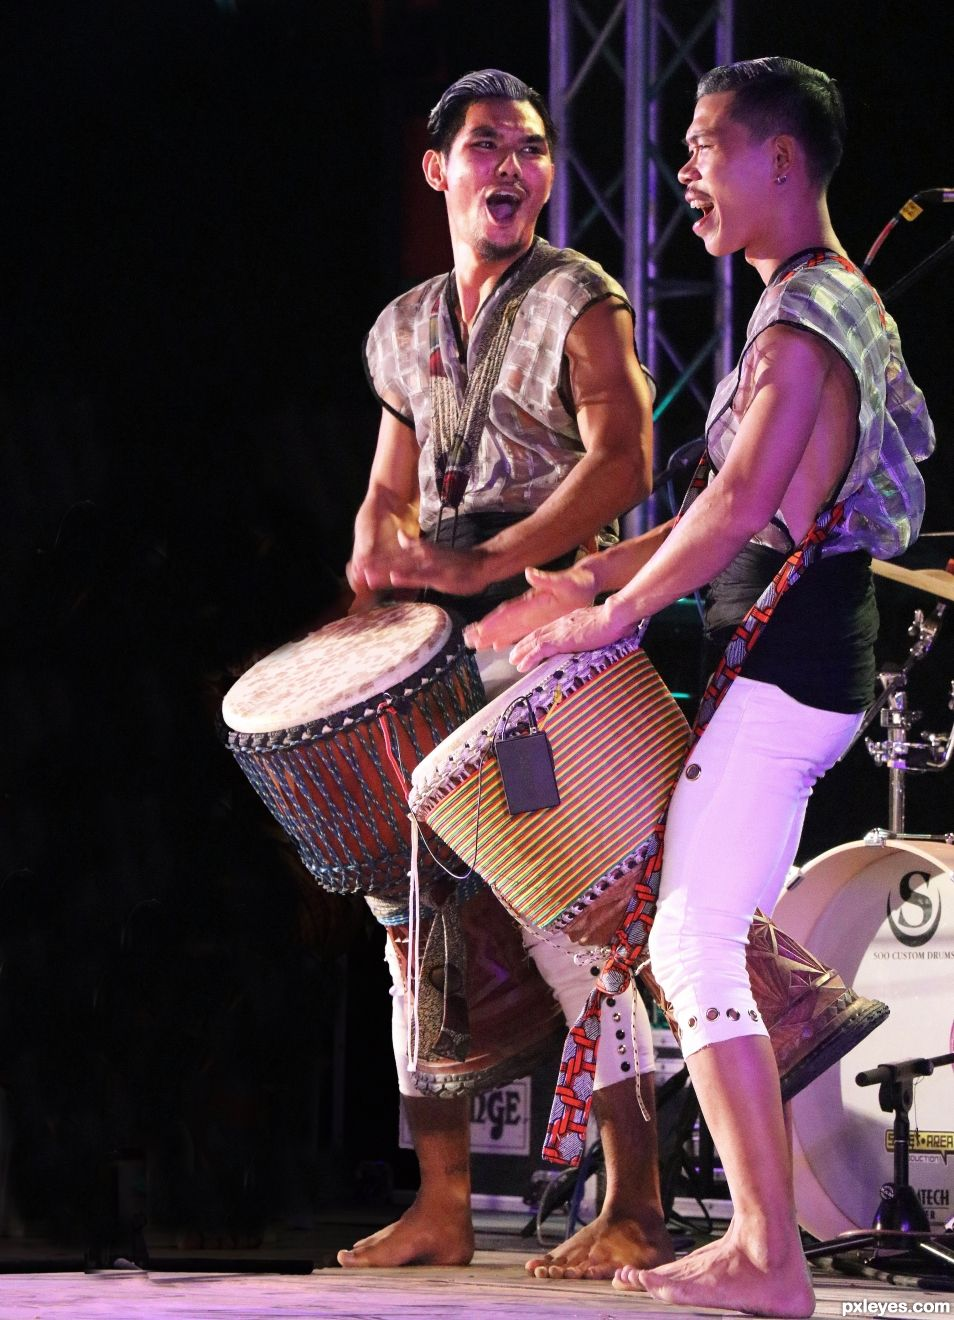 Entry number 106258 Drummers